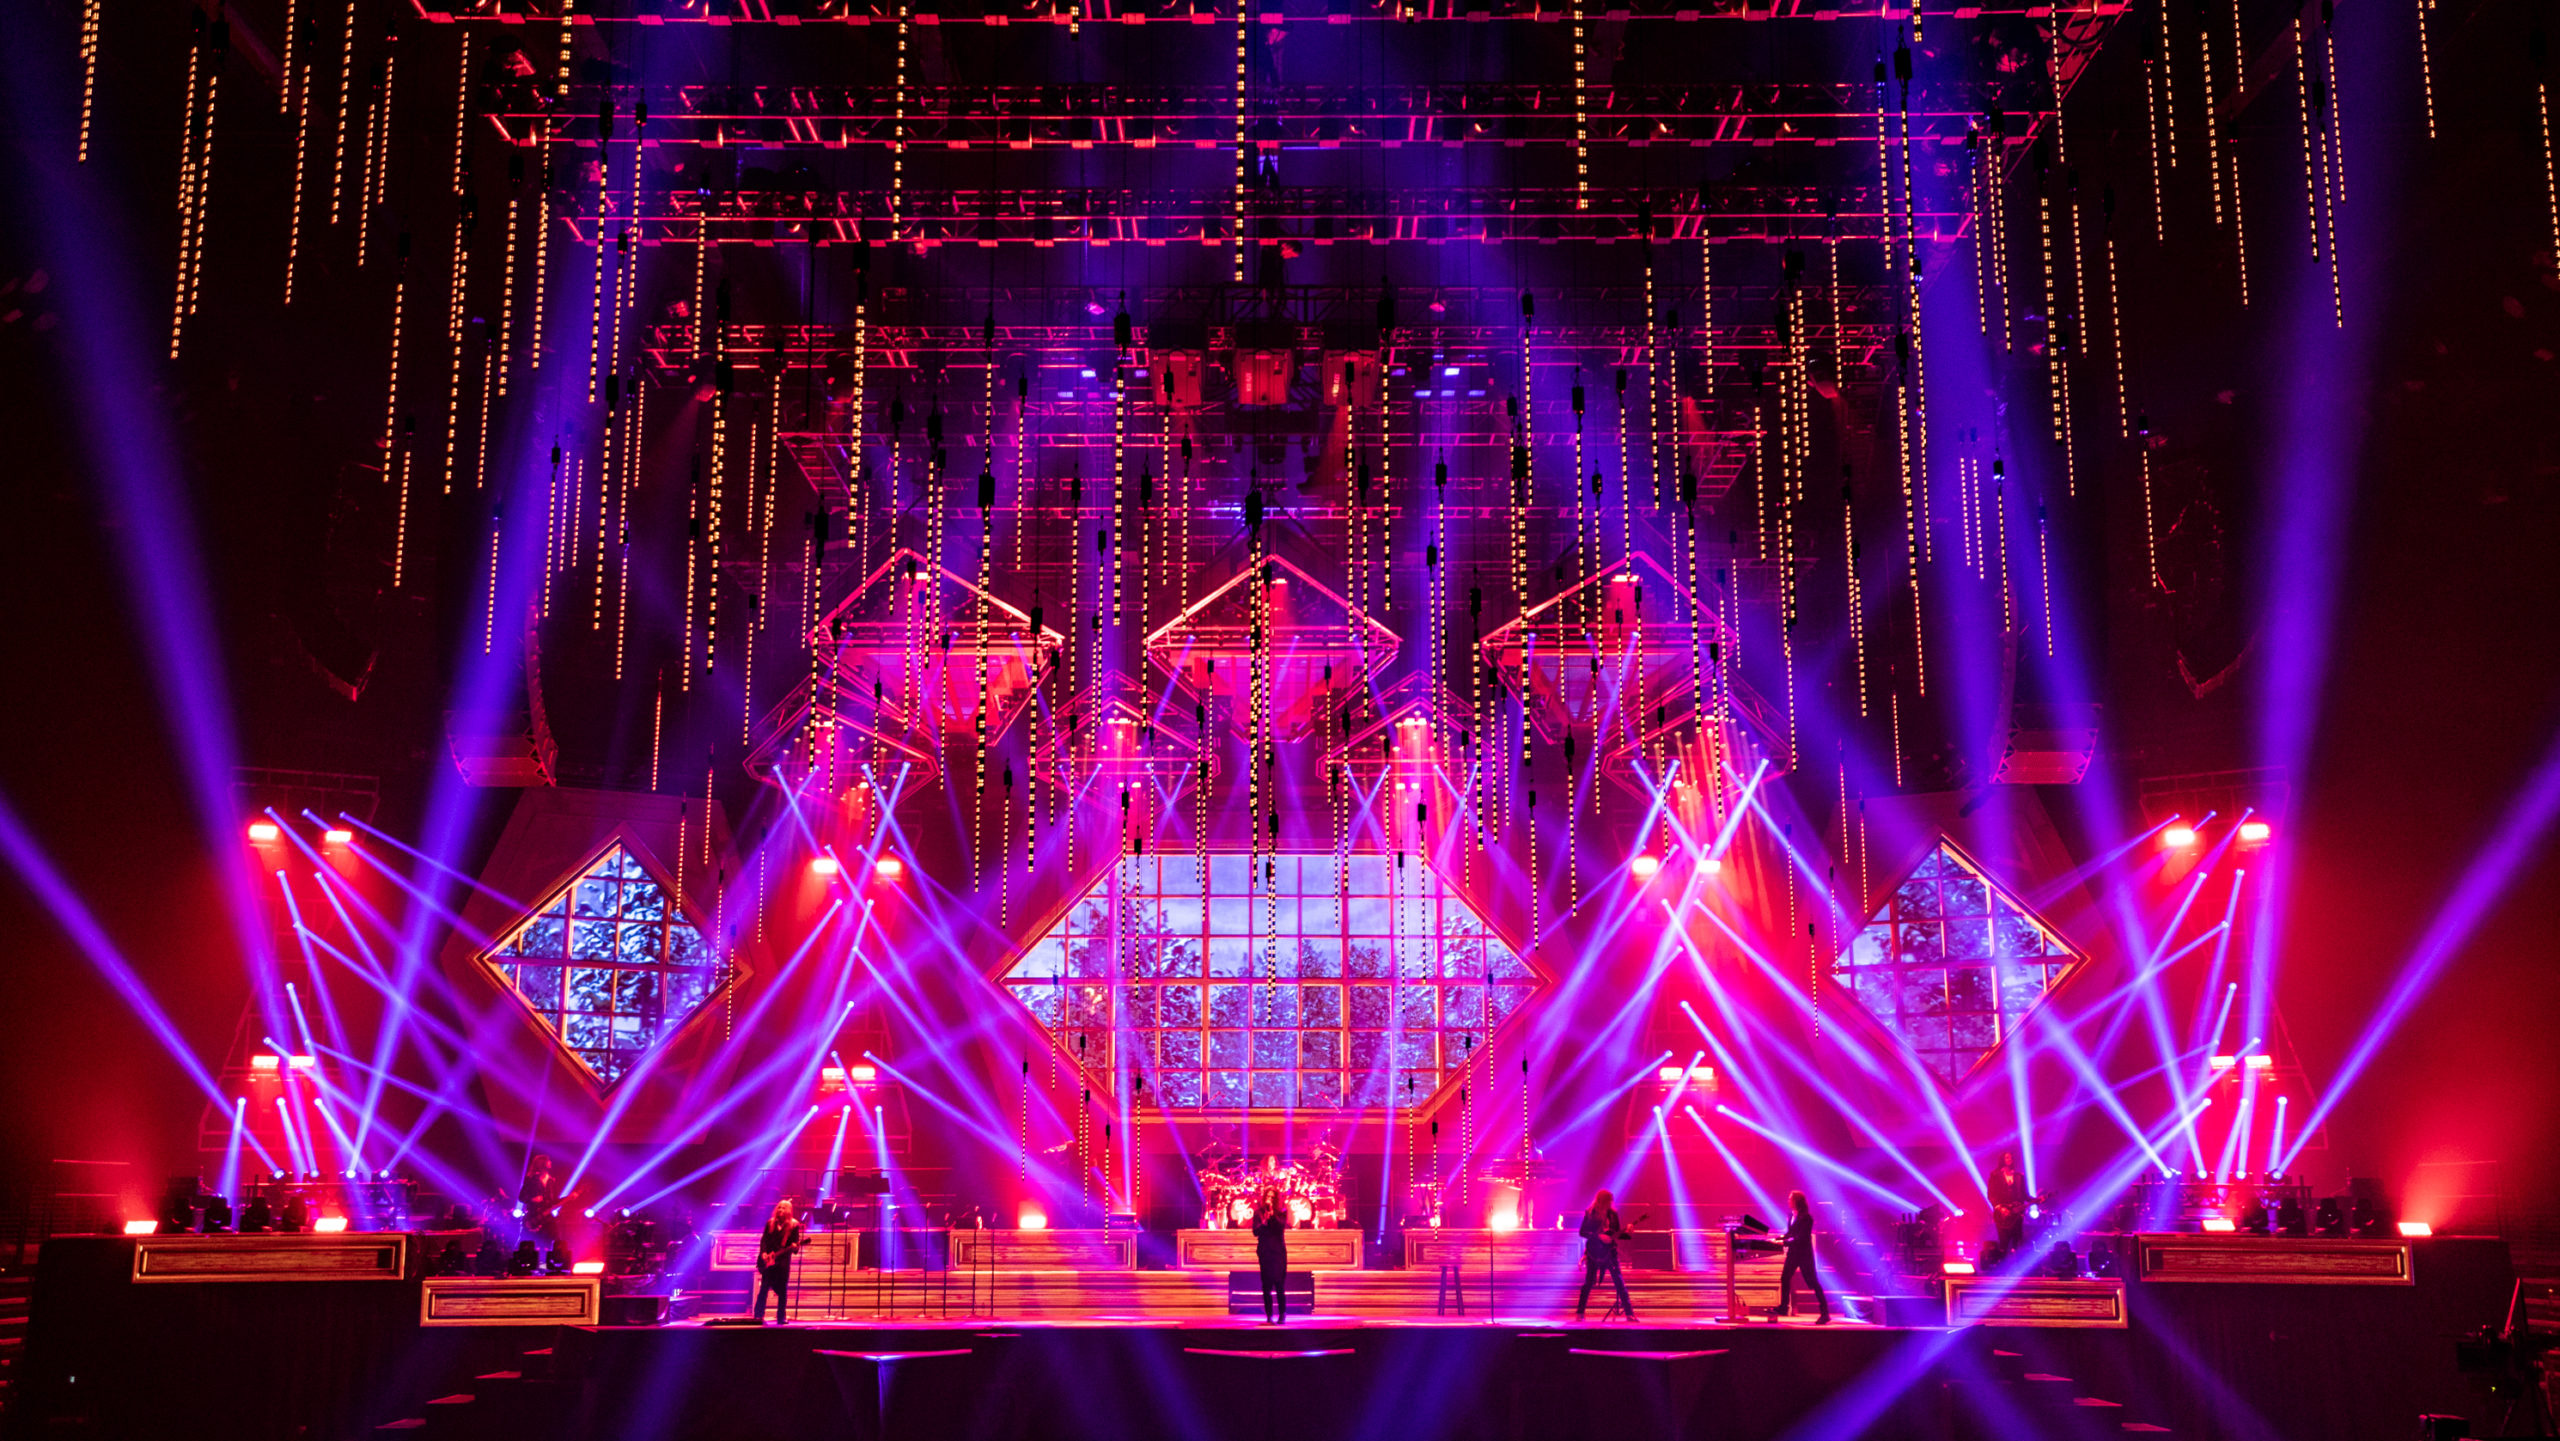 trans-siberian-orchestra-scaled-4278699-6849939-jpg